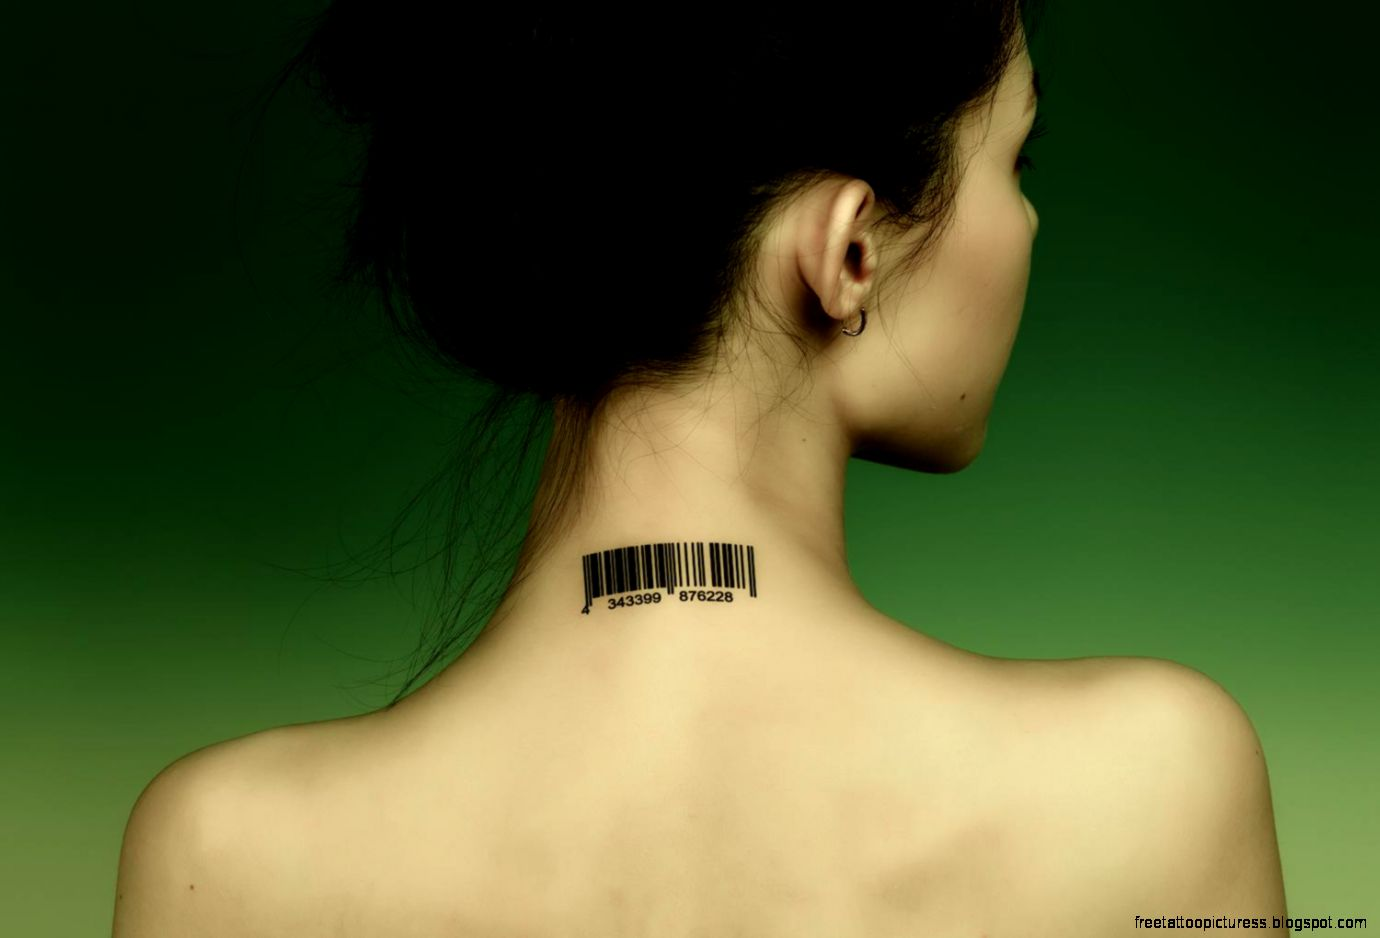 Google39s Motorola patents 39neck tattoo39 smartphone accessory